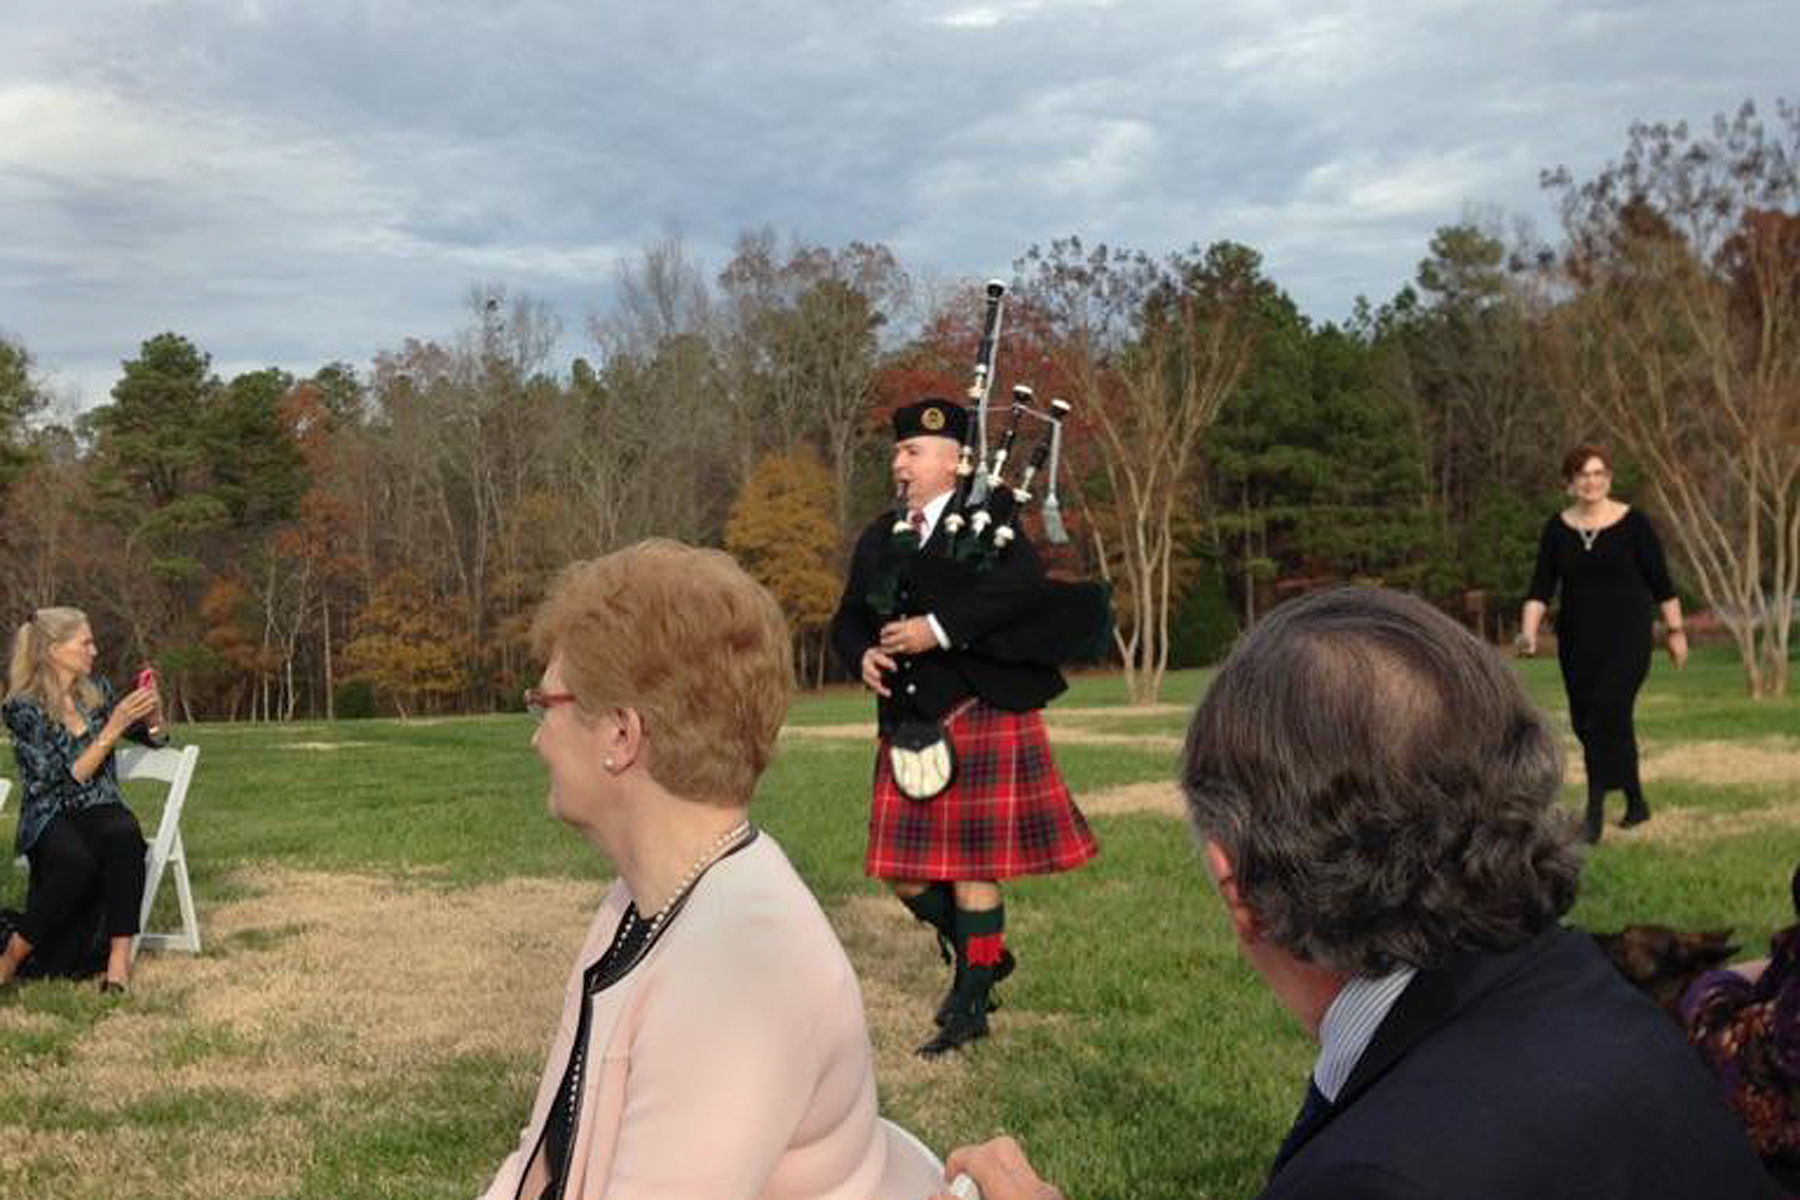 Bagpiping at a funeral with honor guard